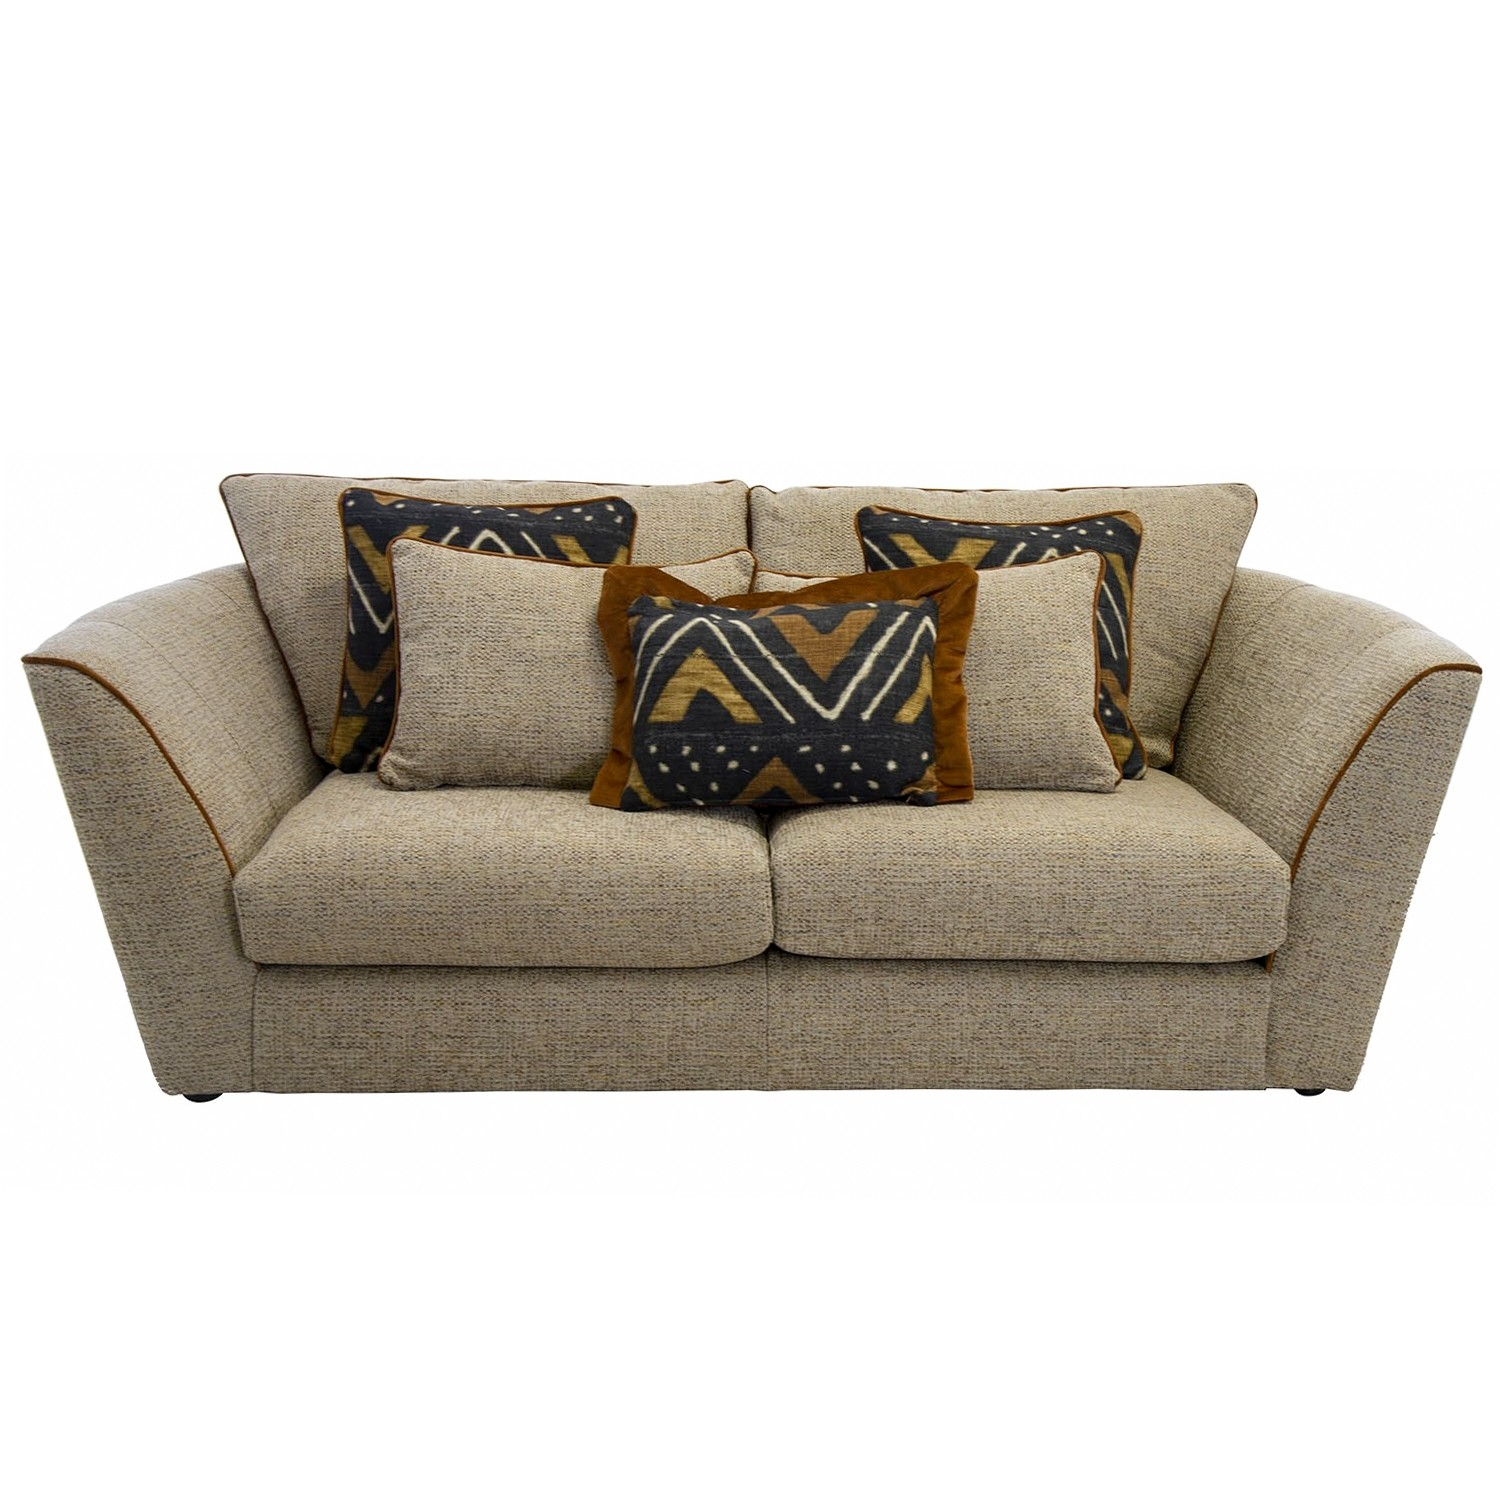 Outstanding Marlow 2 Seater Traditional Back Fabric Sofa Ibusinesslaw Wood Chair Design Ideas Ibusinesslaworg